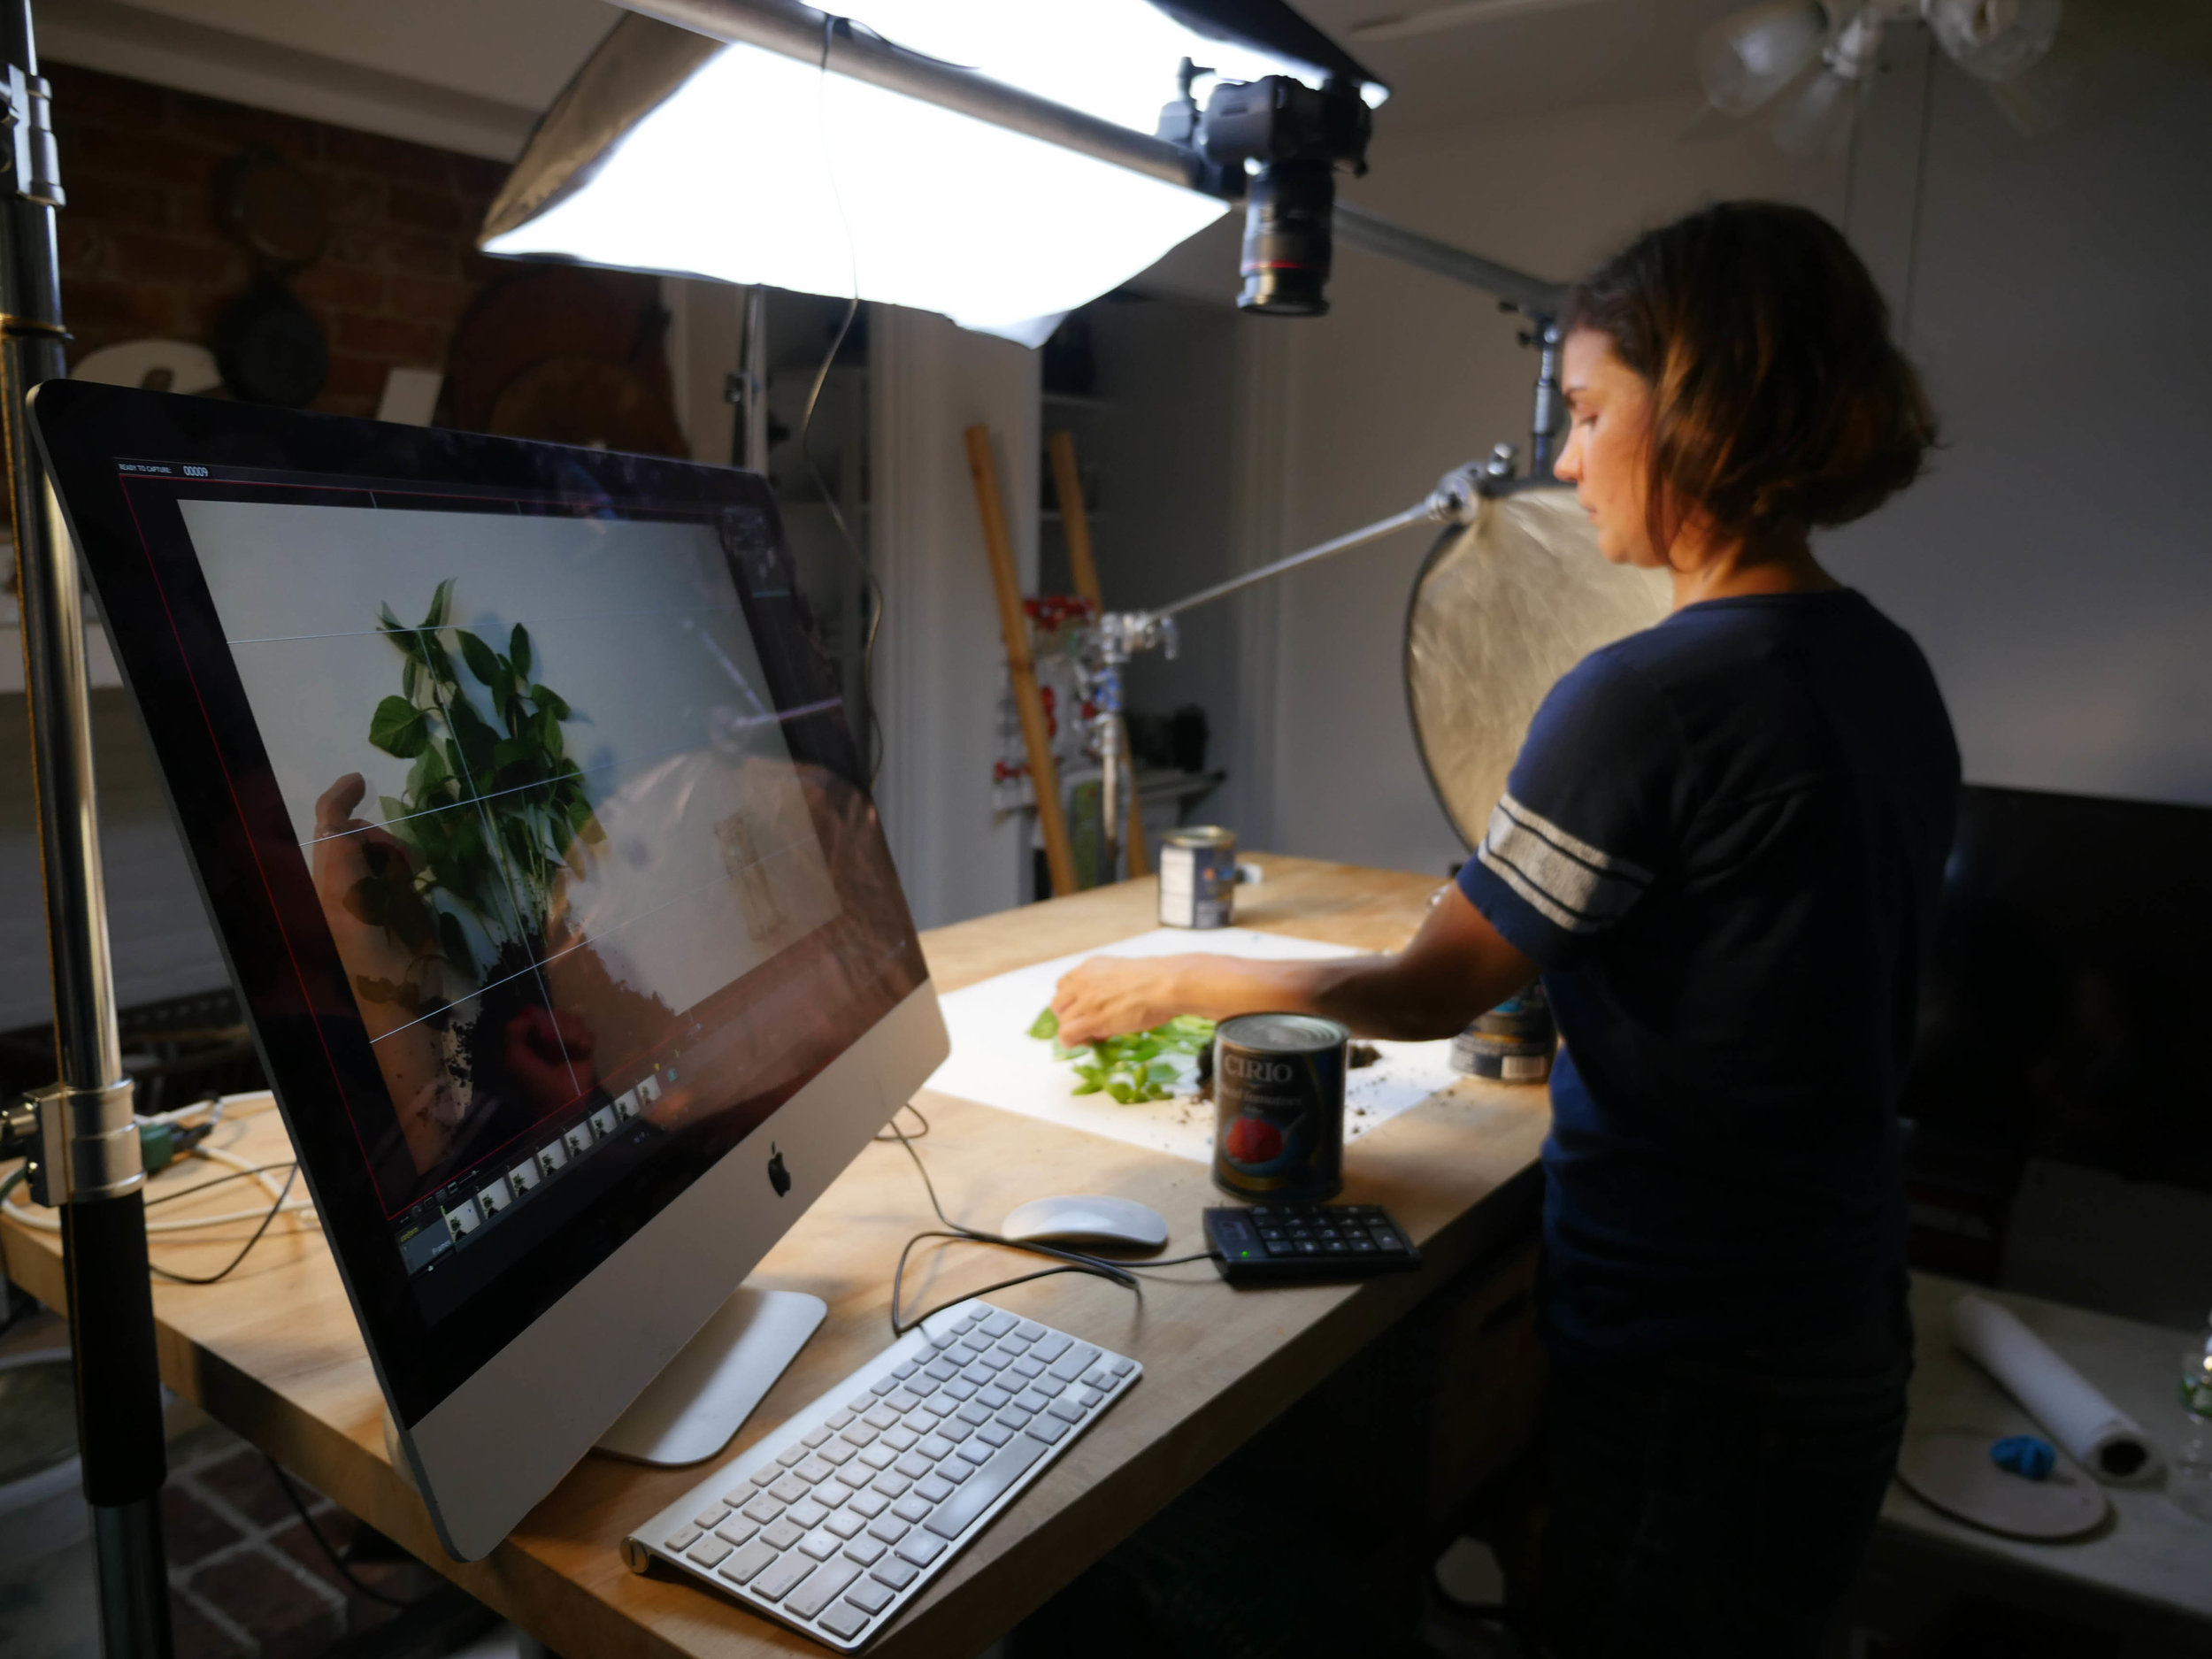 Me creating some stop motion animation magic with a basil plant in my kitchen.